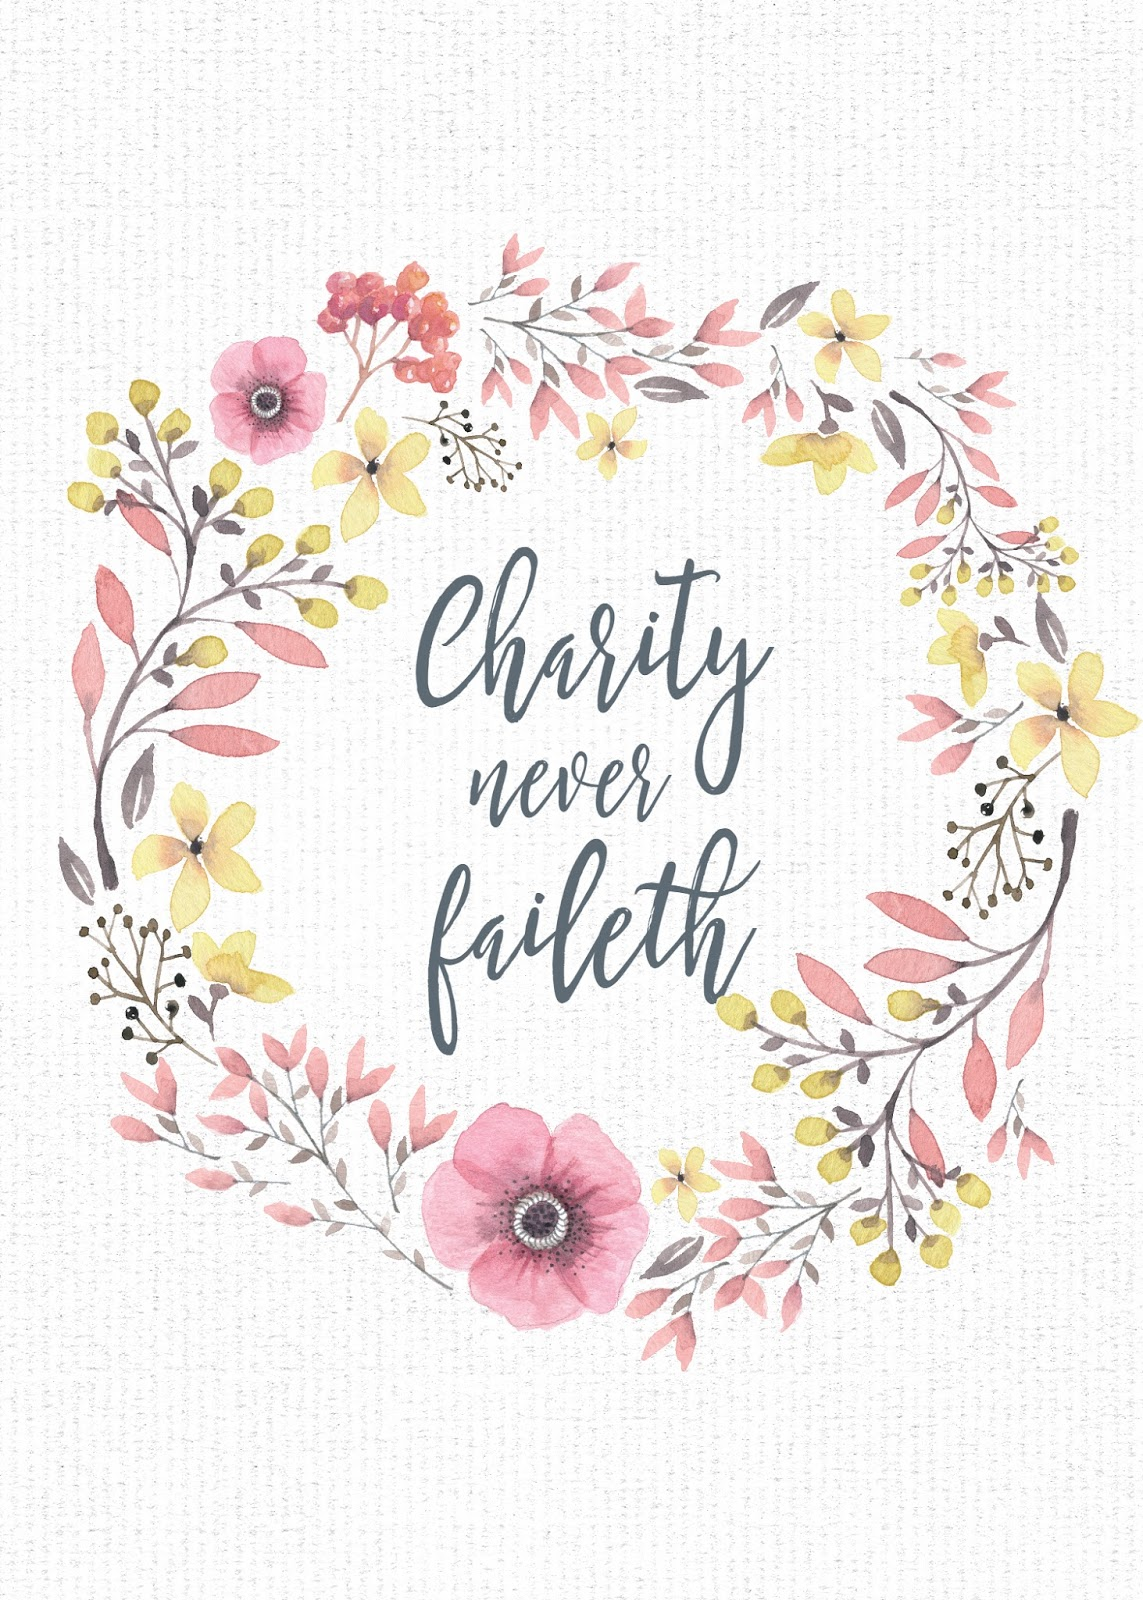 the gift of charity and love as taught in the bible Bible verses about charity luke 21:1-4 esv / 209 helpful votes helpful not helpful jesus looked up and saw the rich putting their gifts into the offering box, and he saw a poor widow put in two small copper coins.